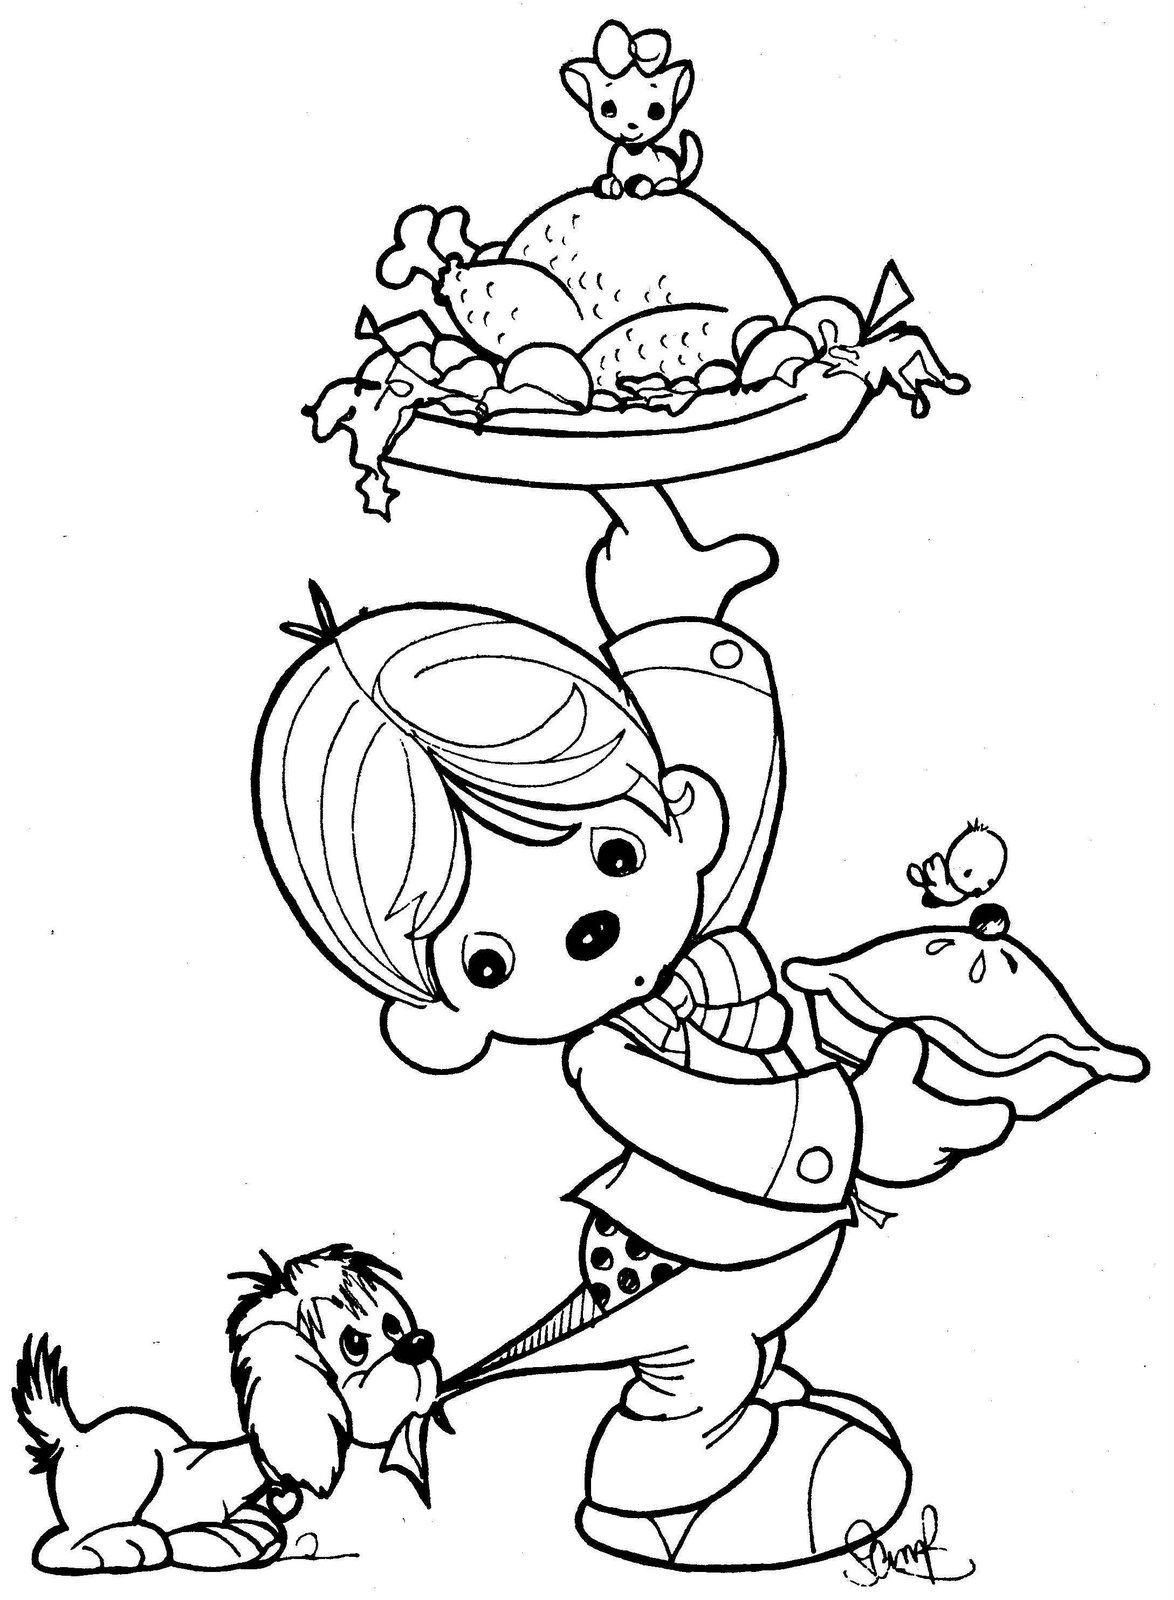 Precious moments waiter child coloring for Coloring pages of precious moments